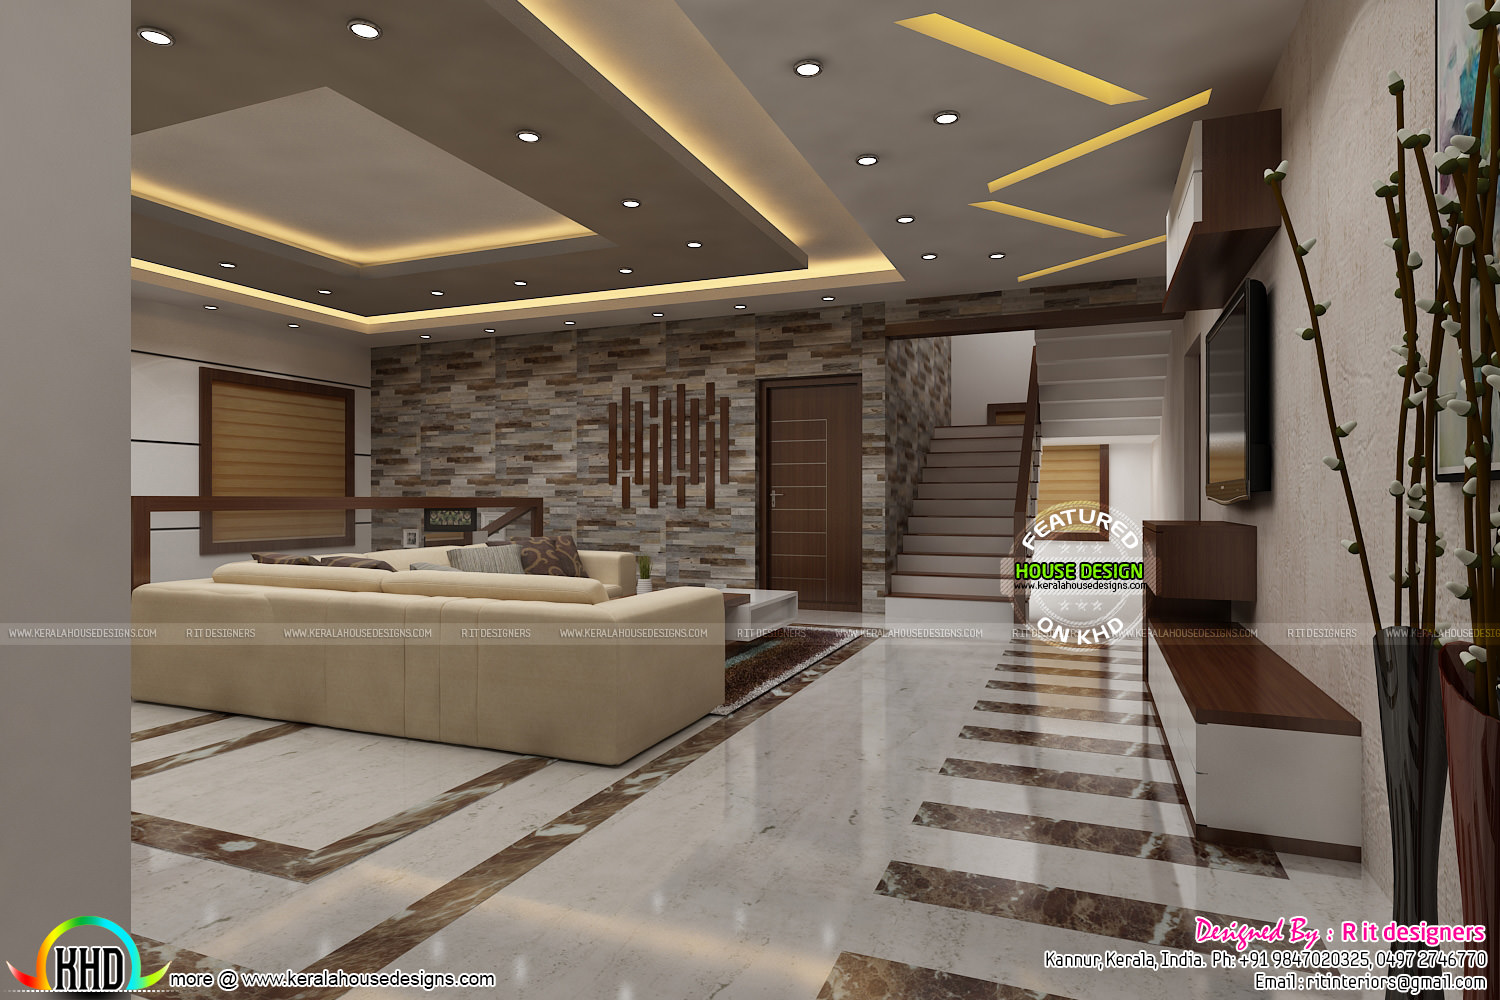 Most modern kerala living room interior kerala home for House plans with interior photos